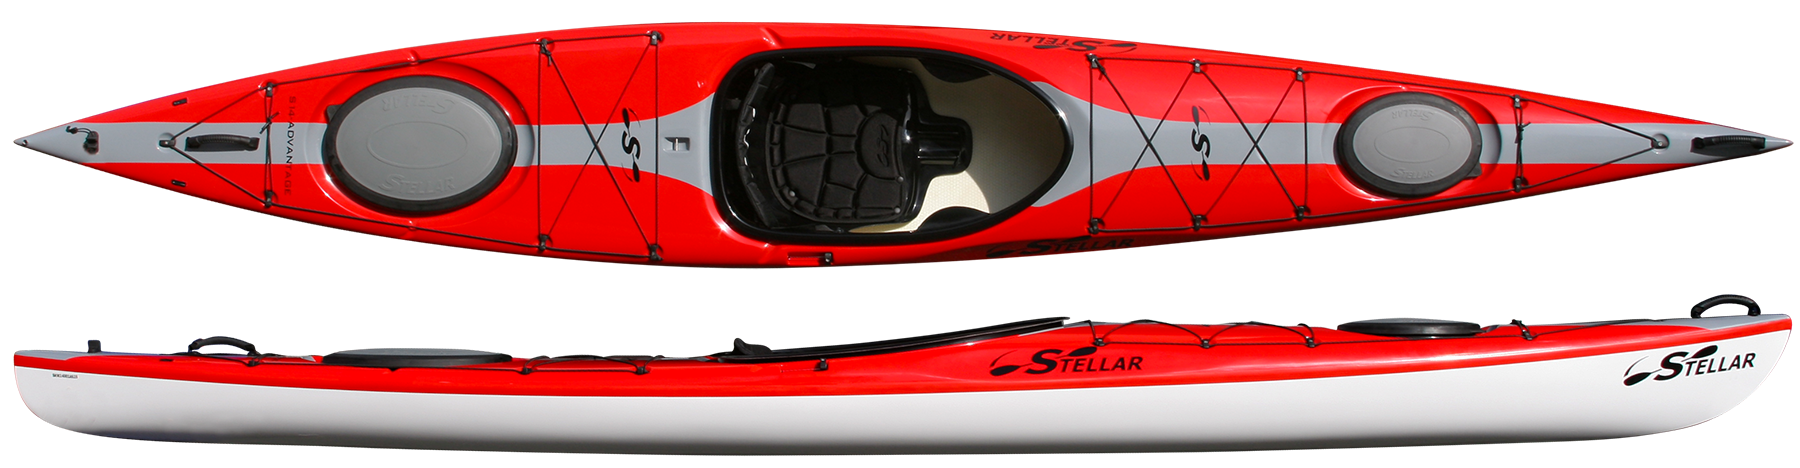 S14:  When designing the Stellar 14' (S14) Touring Kayak, we wanted to have a boat that was efficient through the water, yet stable. Unlike any other boat of this length, the S14 has the speed of a much longer boat, but beginners can feel comfortable paddling it. Two water tight hatches allow for ample storage for day and overnight trips, while the retractable skeg in the stern helps with tracking. The S14 comes standard with fittings to upgrade to a rudder steered boat as well. Its short length and light weight make it ideal for those who want a high performance boat, but are short on storage space or frequently car-top their boat.